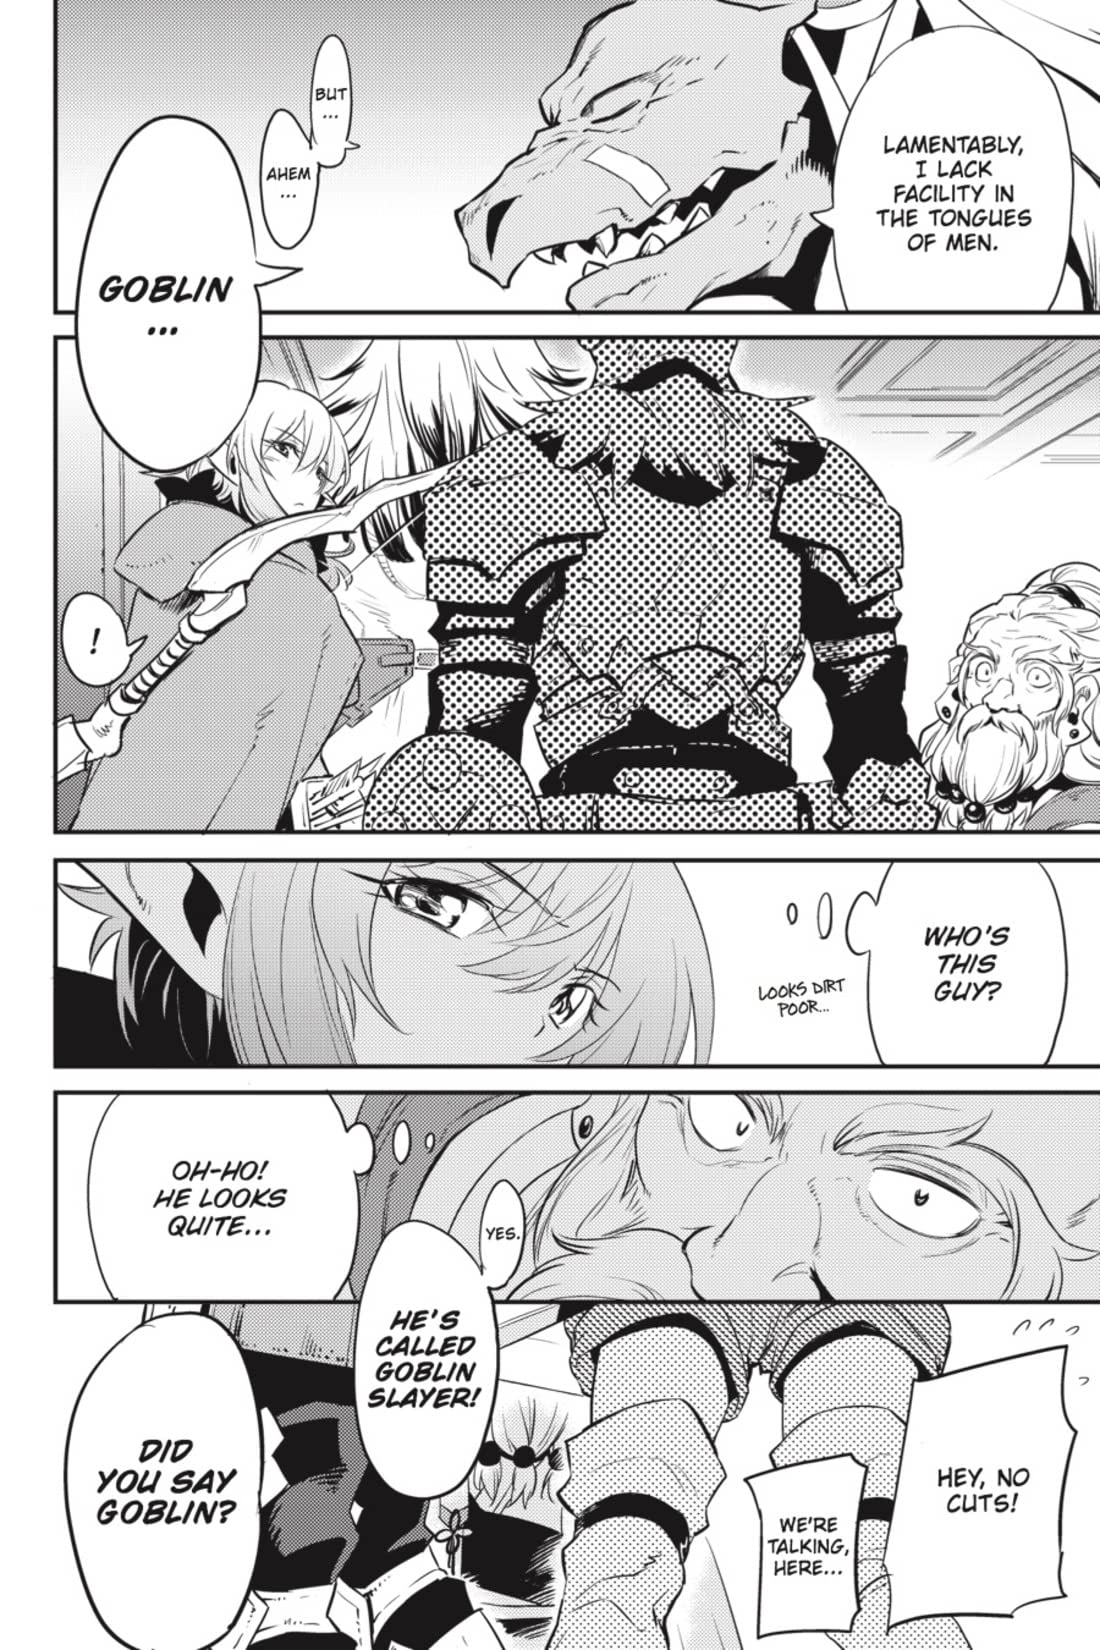 Goblin Slayer #5